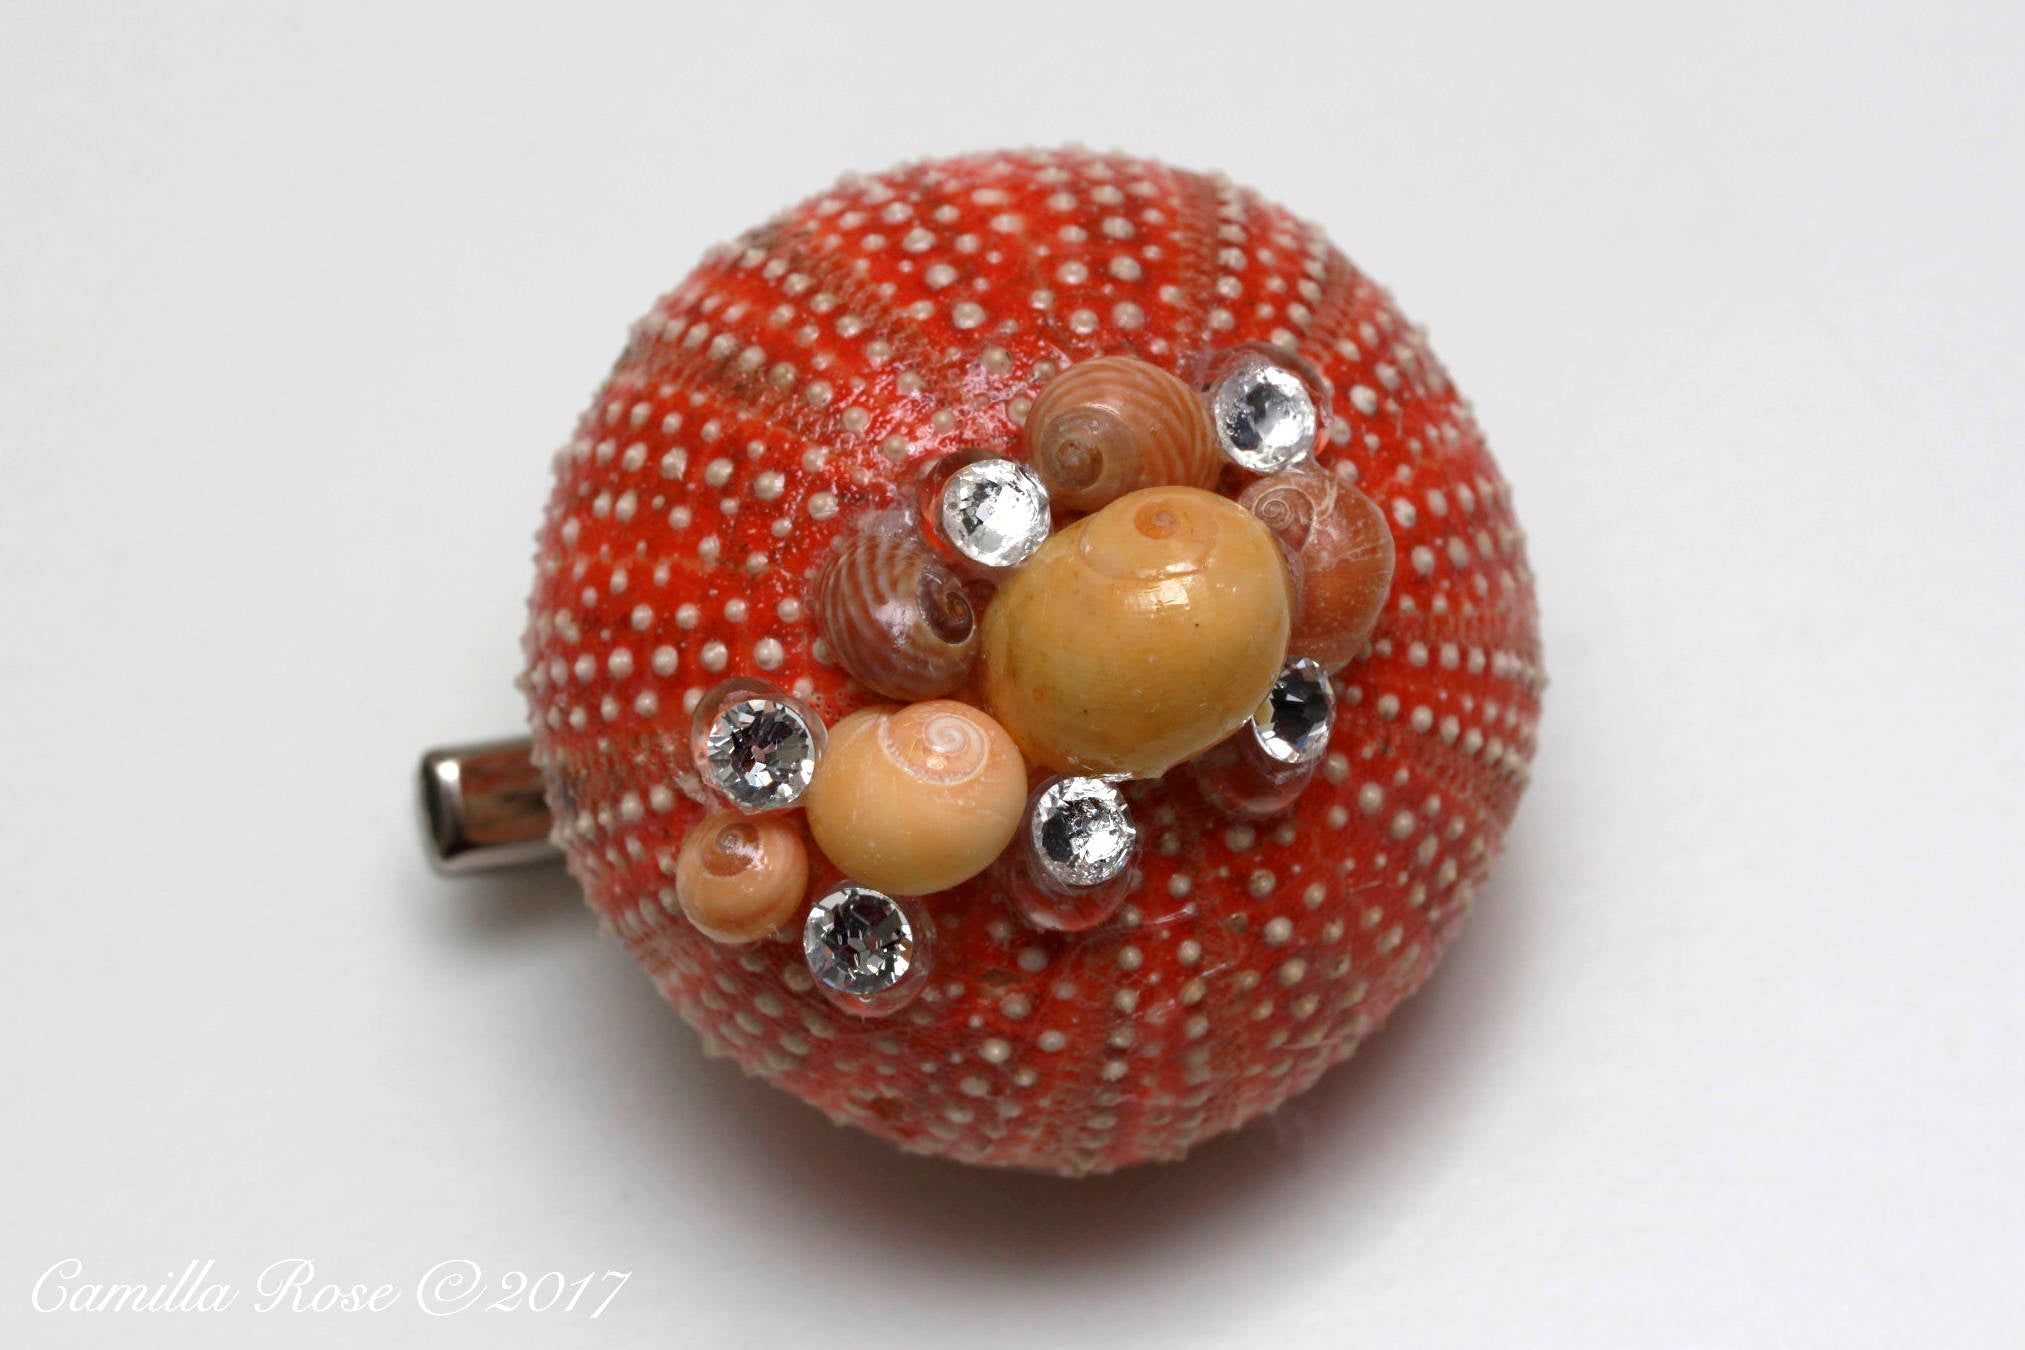 Red Urchin with Yellow Shells